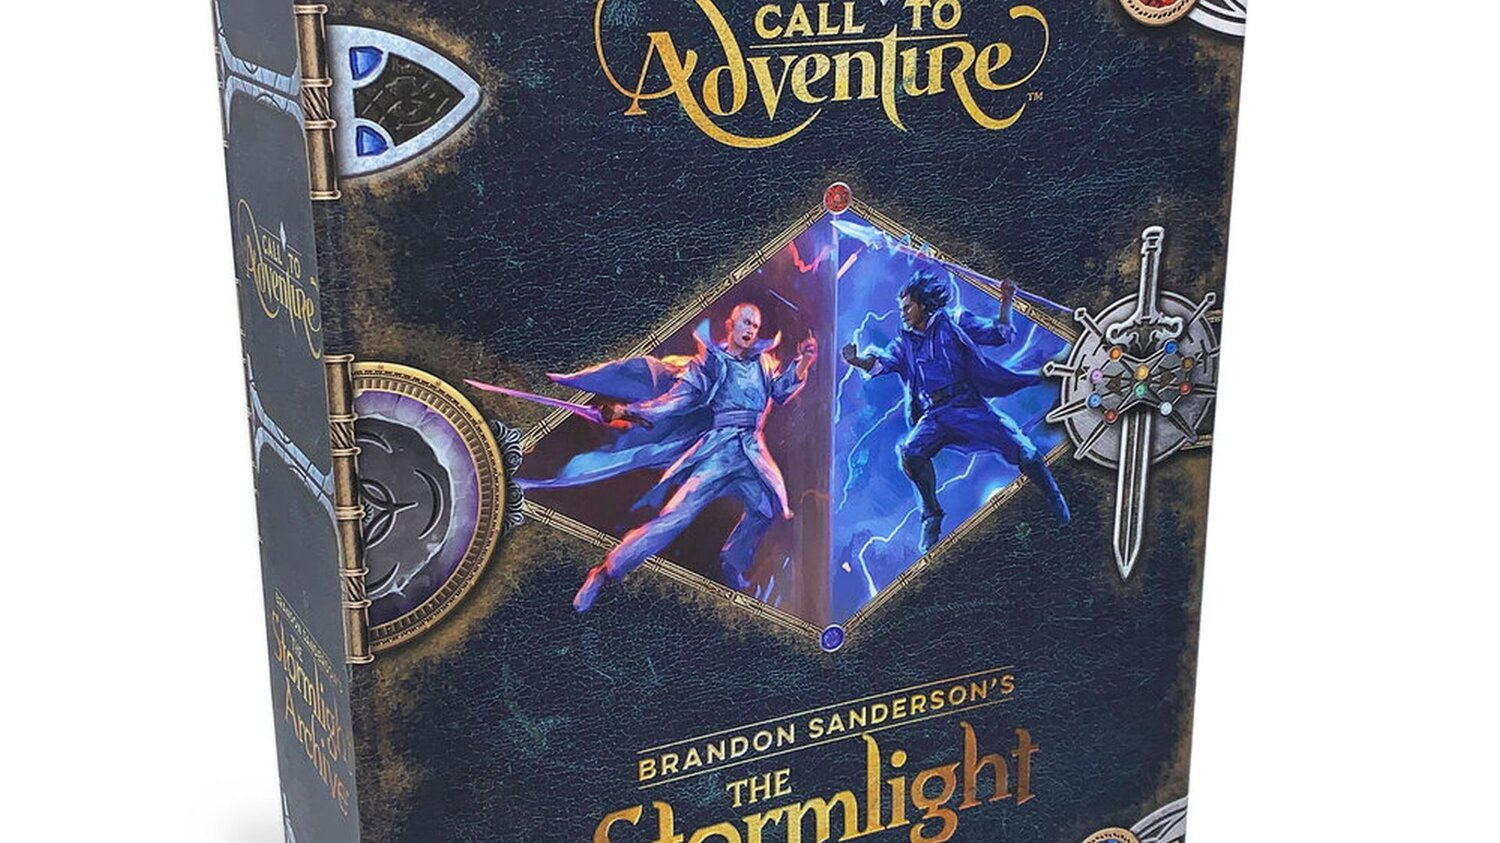 Pre-Order the Deluxe Edition of Brandon Sanderson's THE STORMLIGHT ARCHIVE Board Game Now